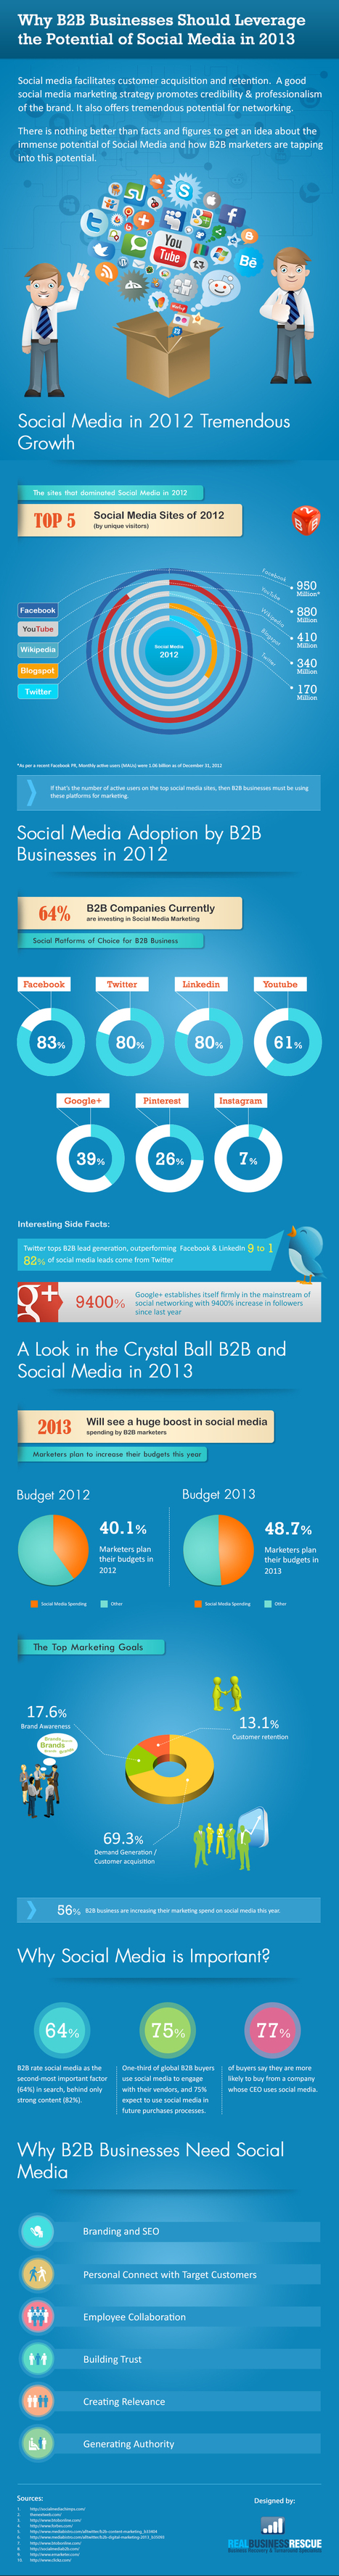 Why B2B Brands Must Invest In Social Media In 2013 [INFOGRAPHIC] | Social Media Portugal | Scoop.it